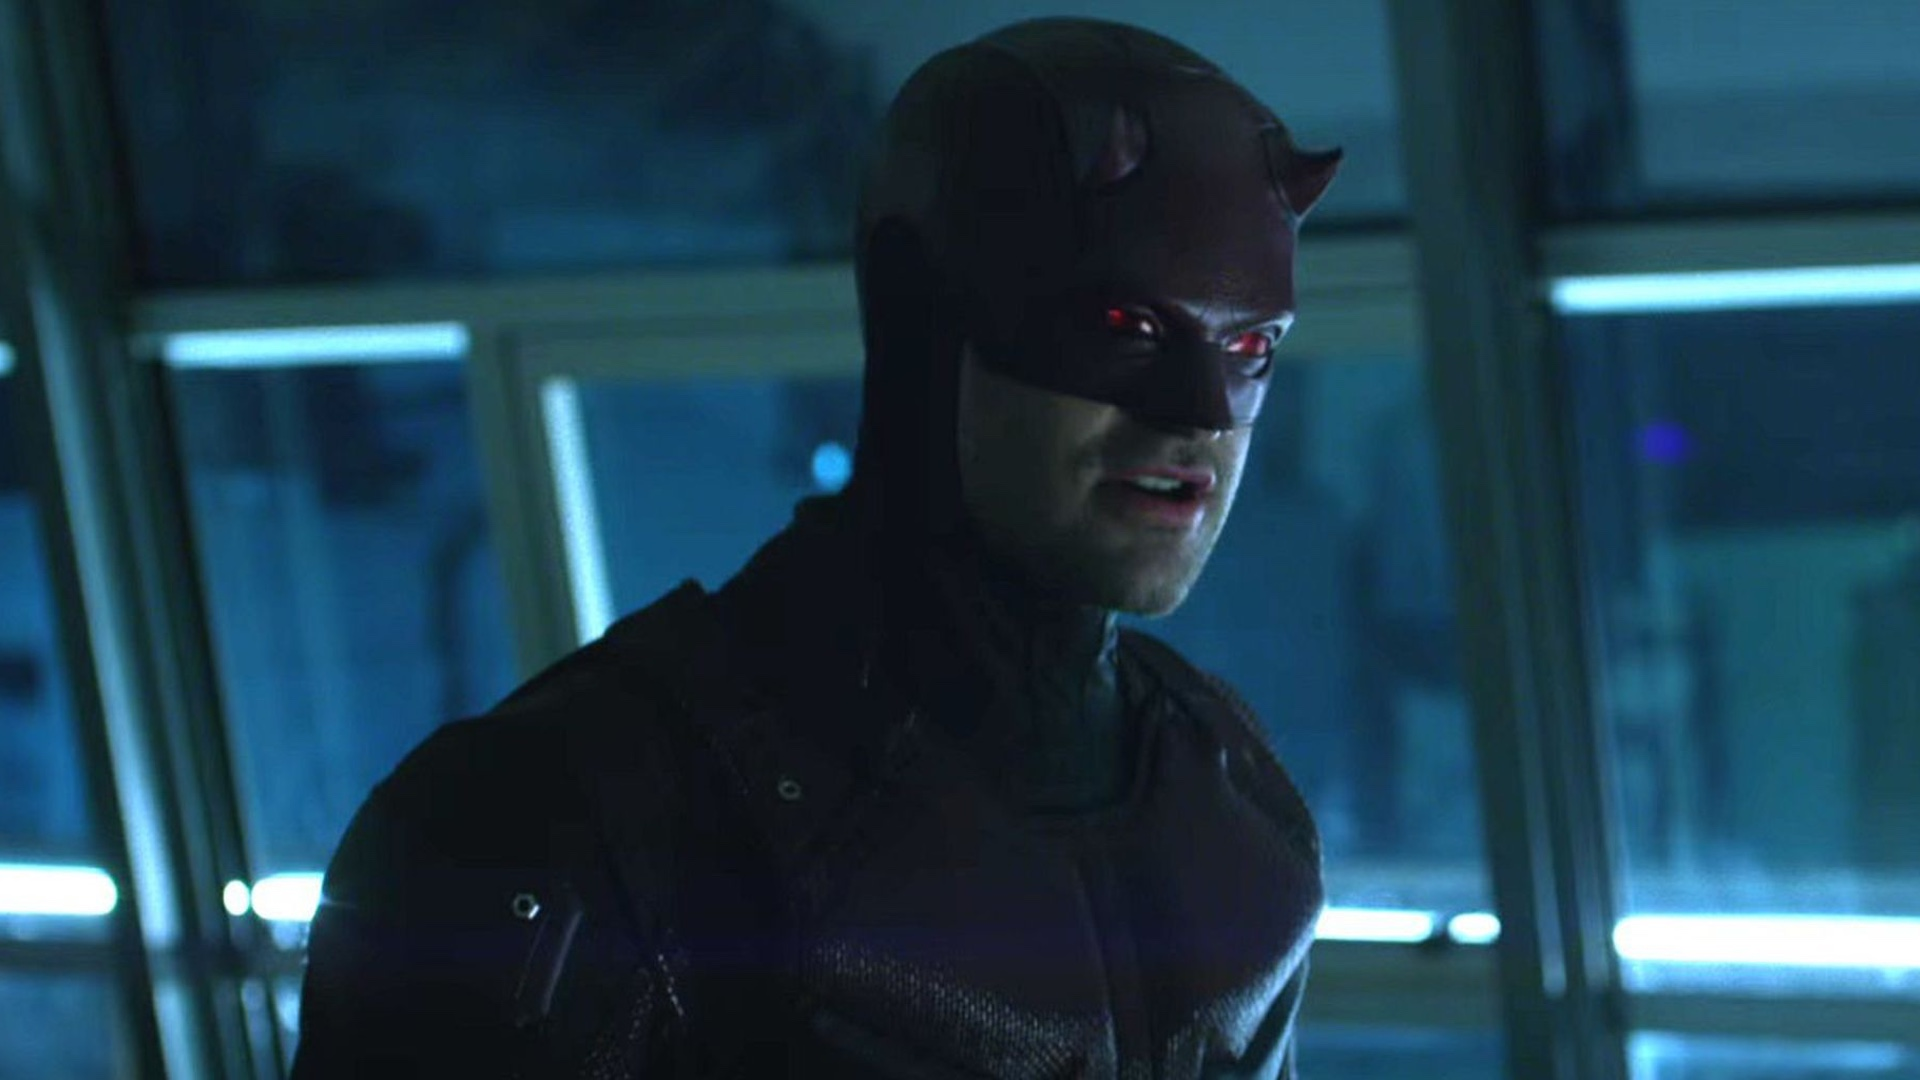 theres-an-agents-of-shield-reference-in-daredevil-season-3-social.jpg